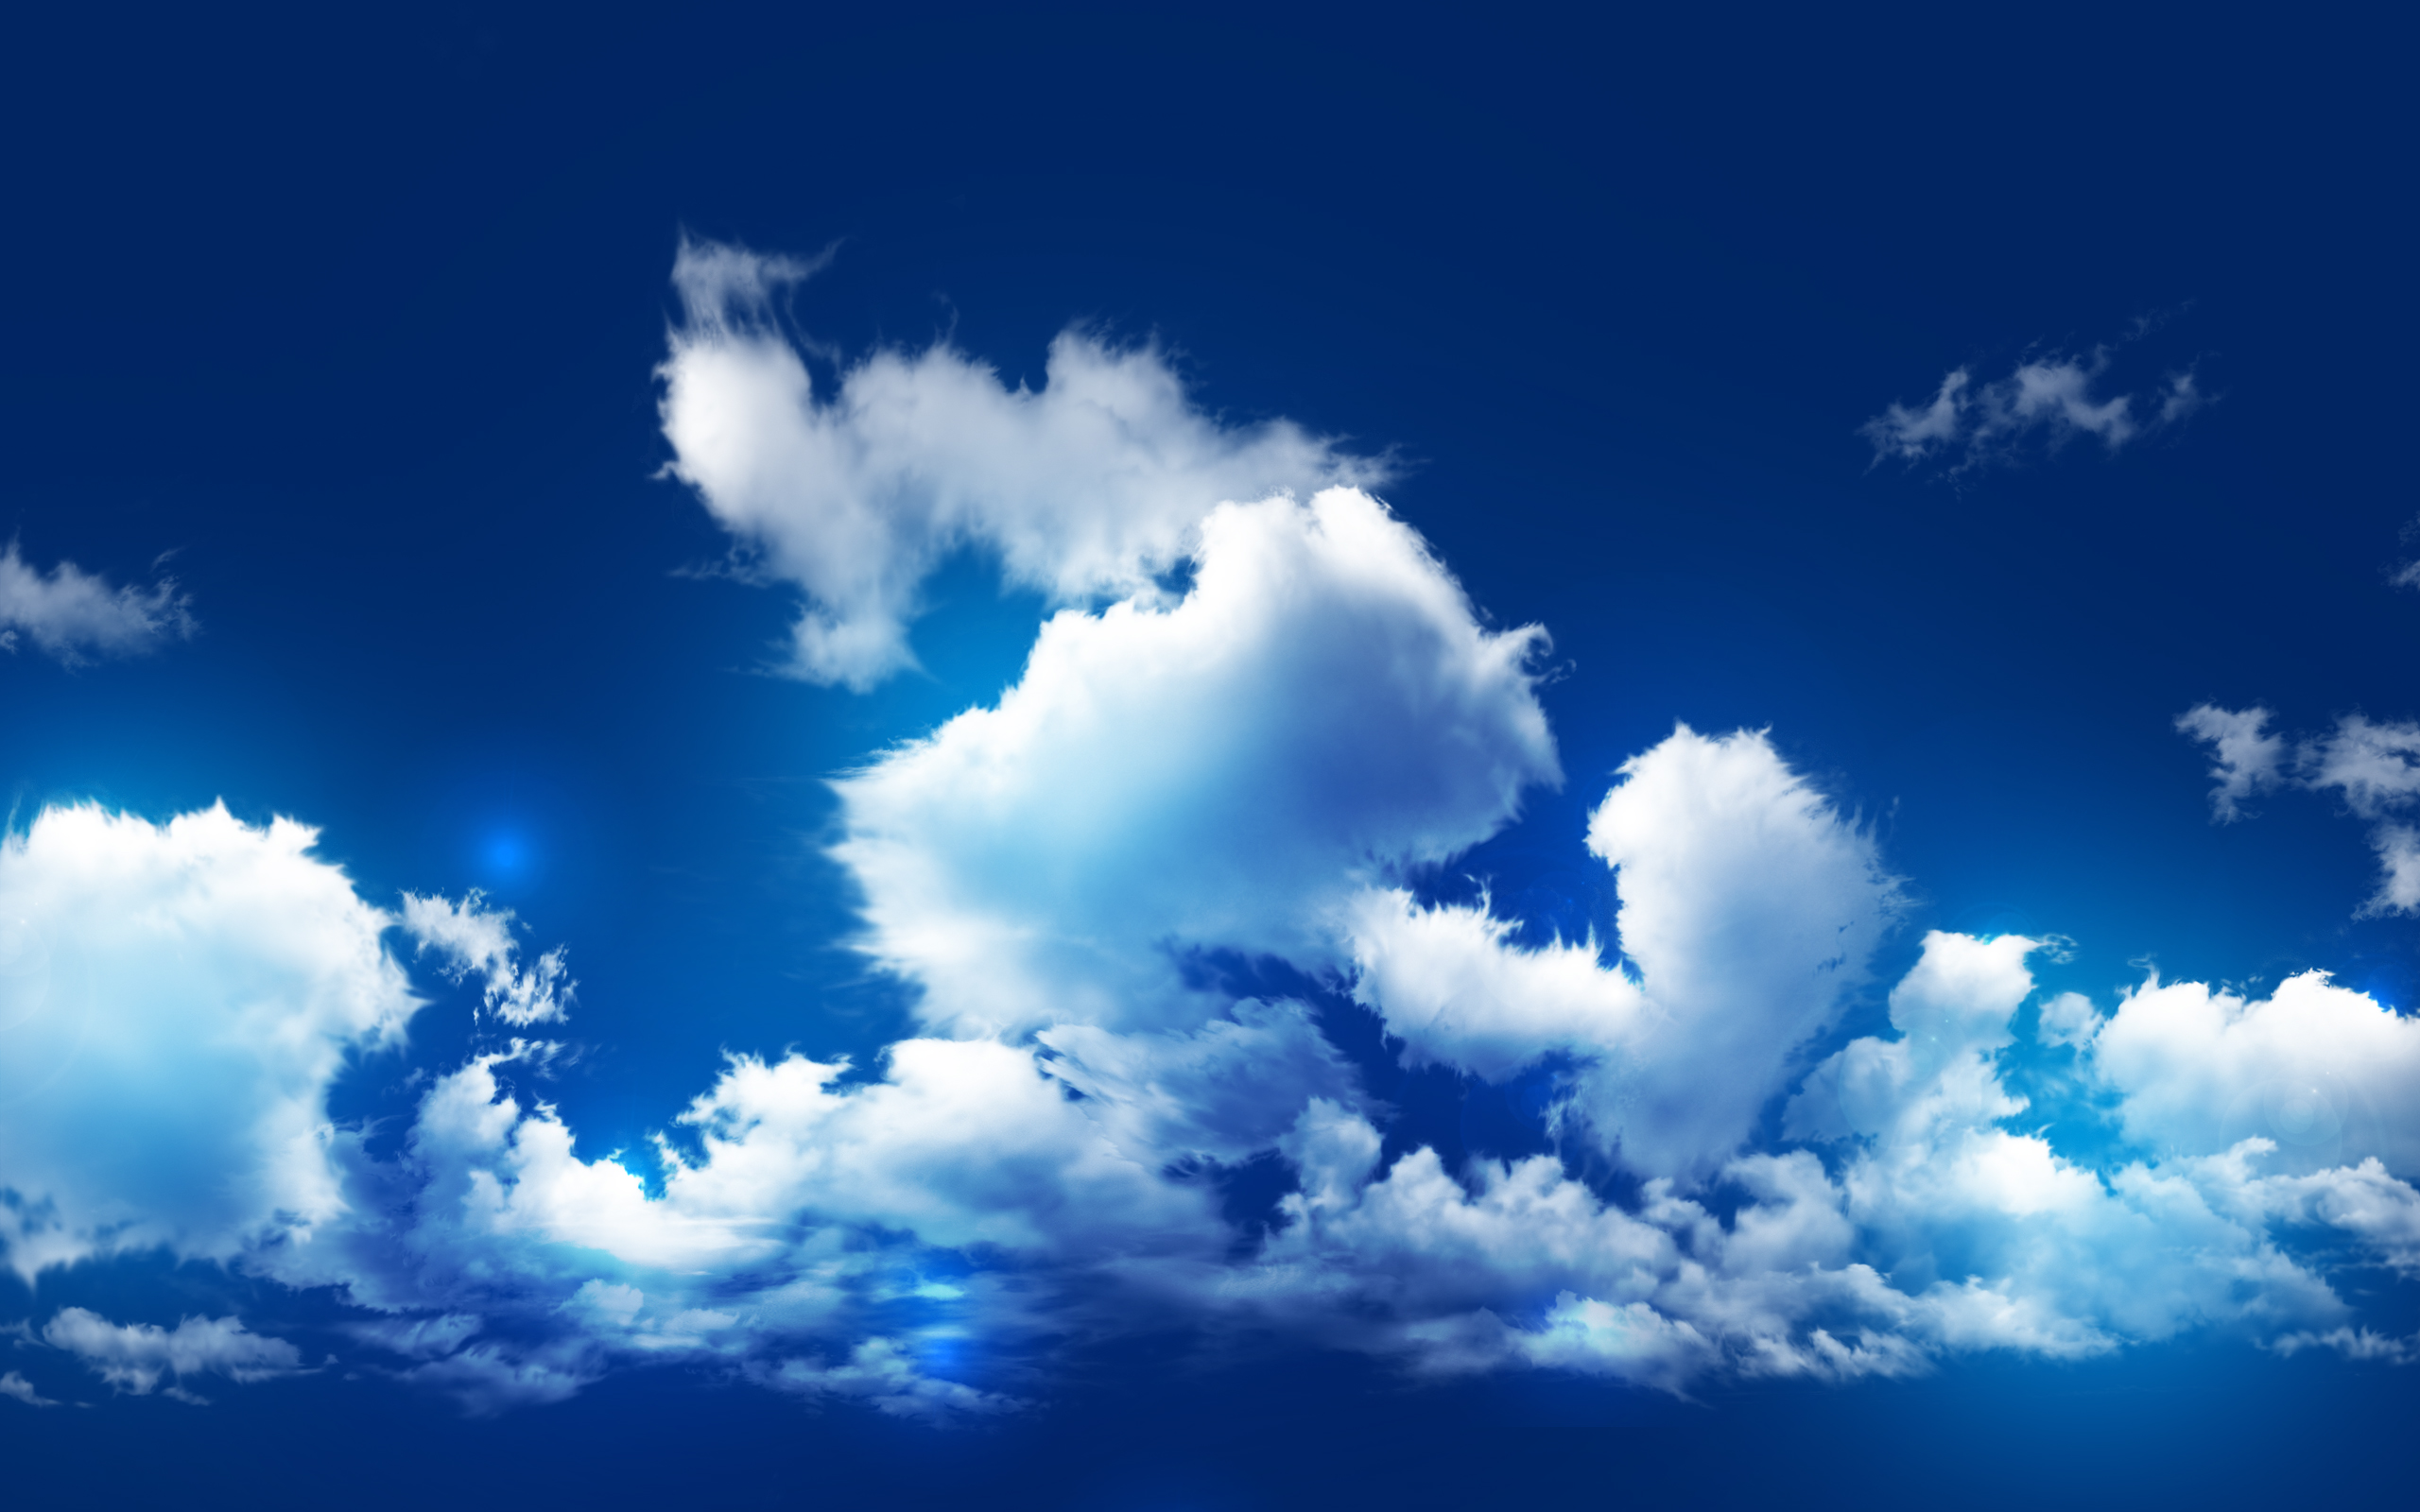 Sky clouds hd